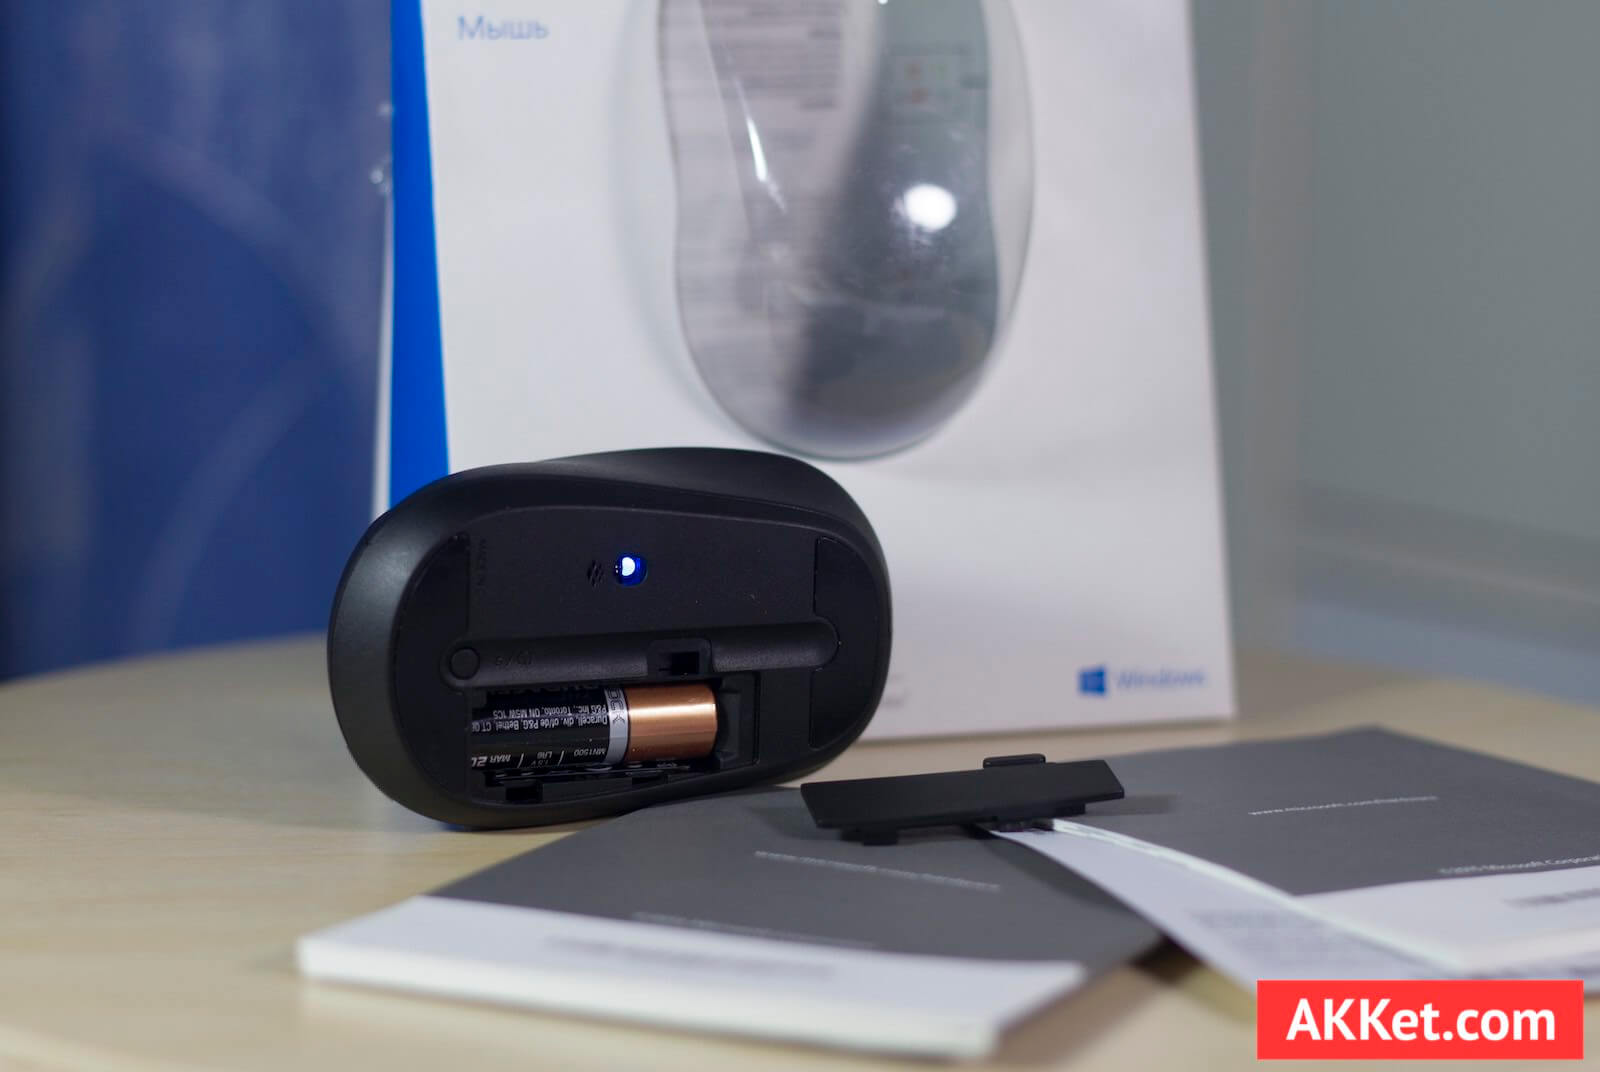 Microsoft Bluetooth Mobile Mouse 3600 review mouse 6